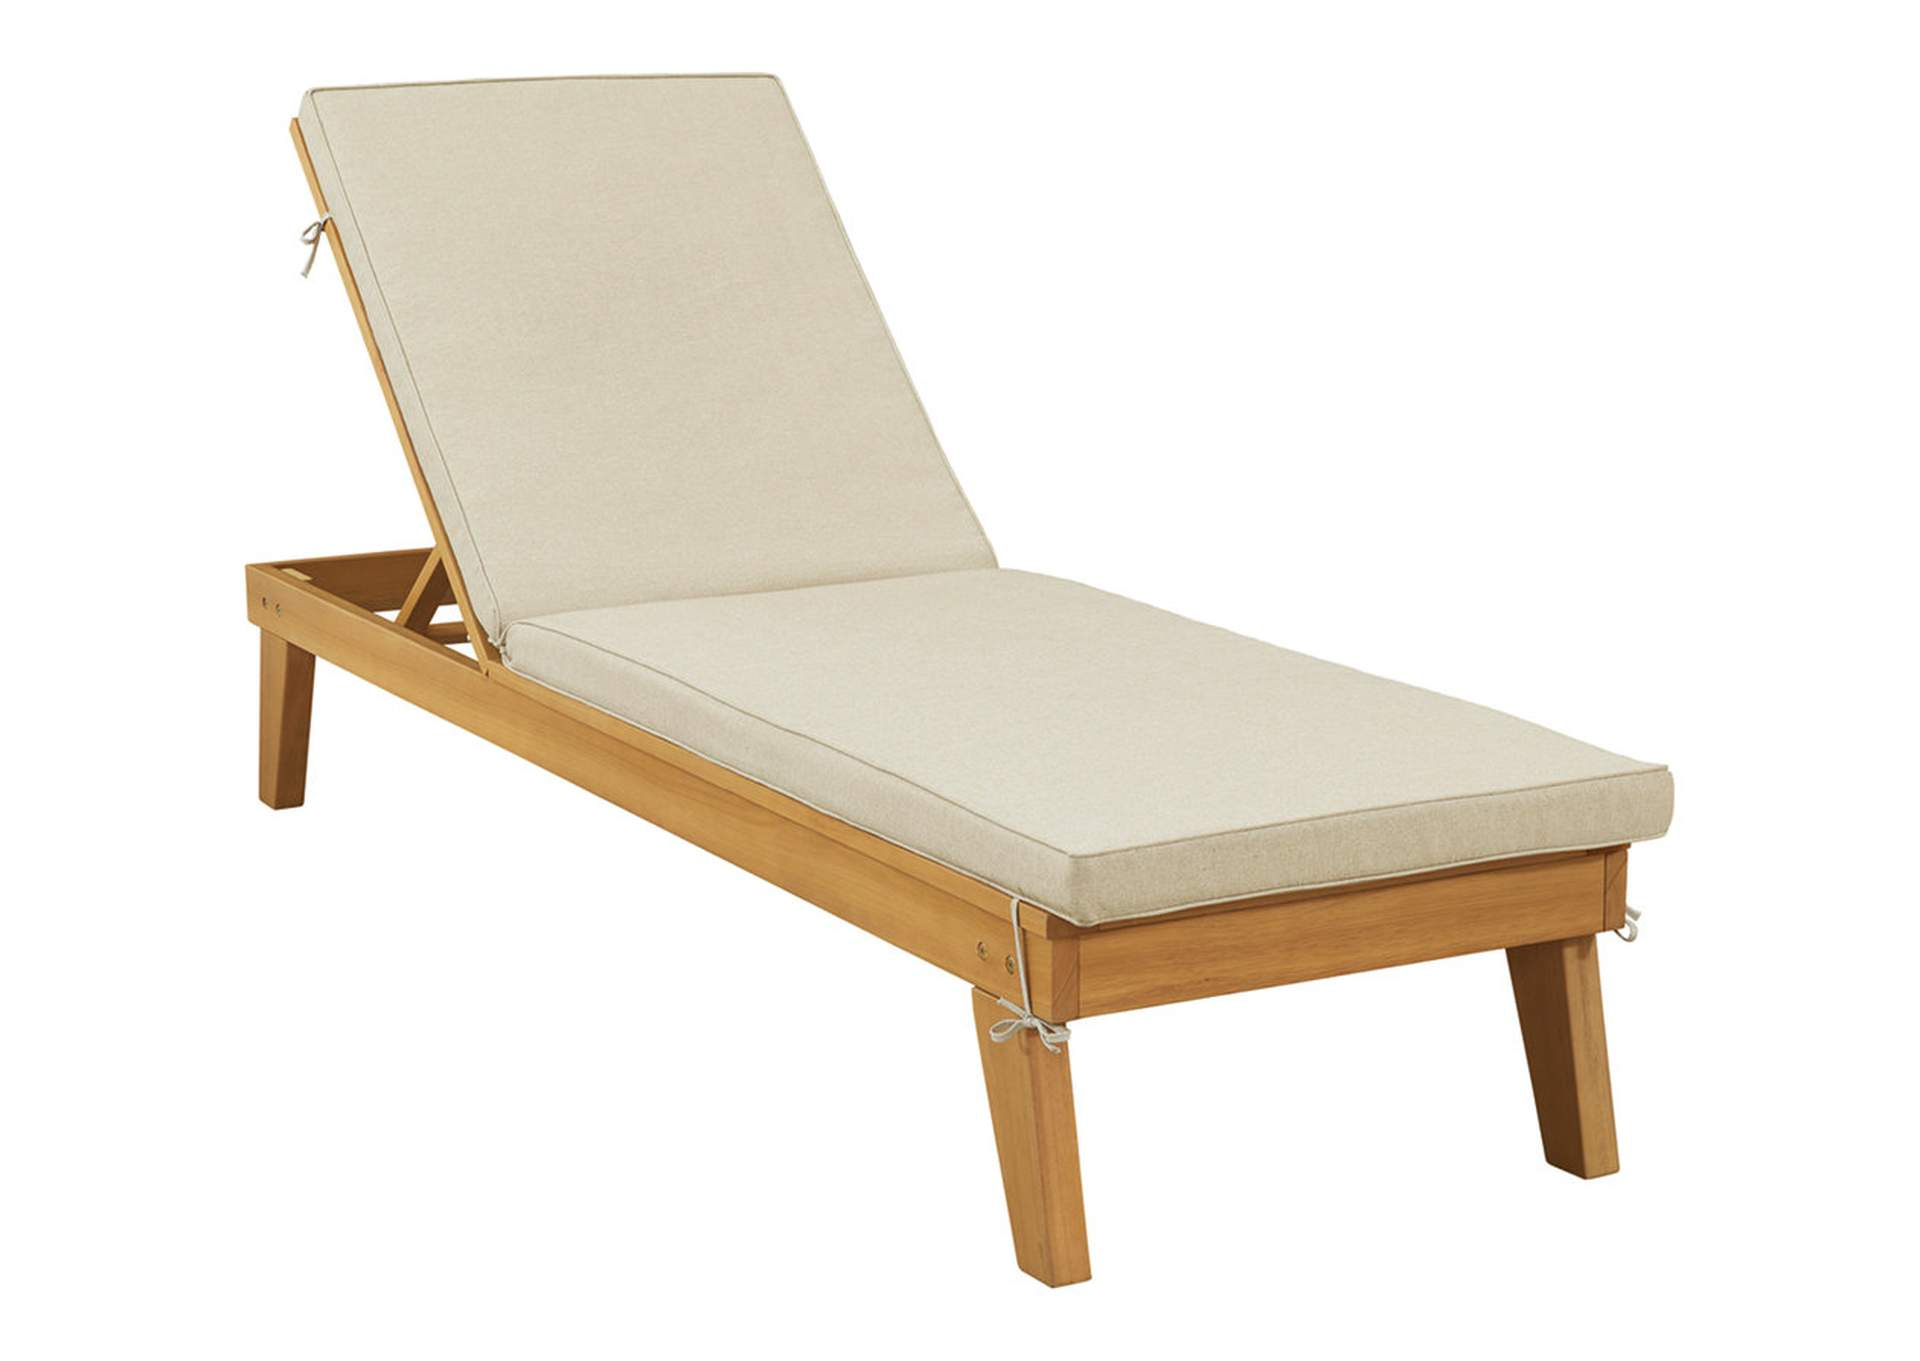 Byron Bay Chaise Lounge with Cushion